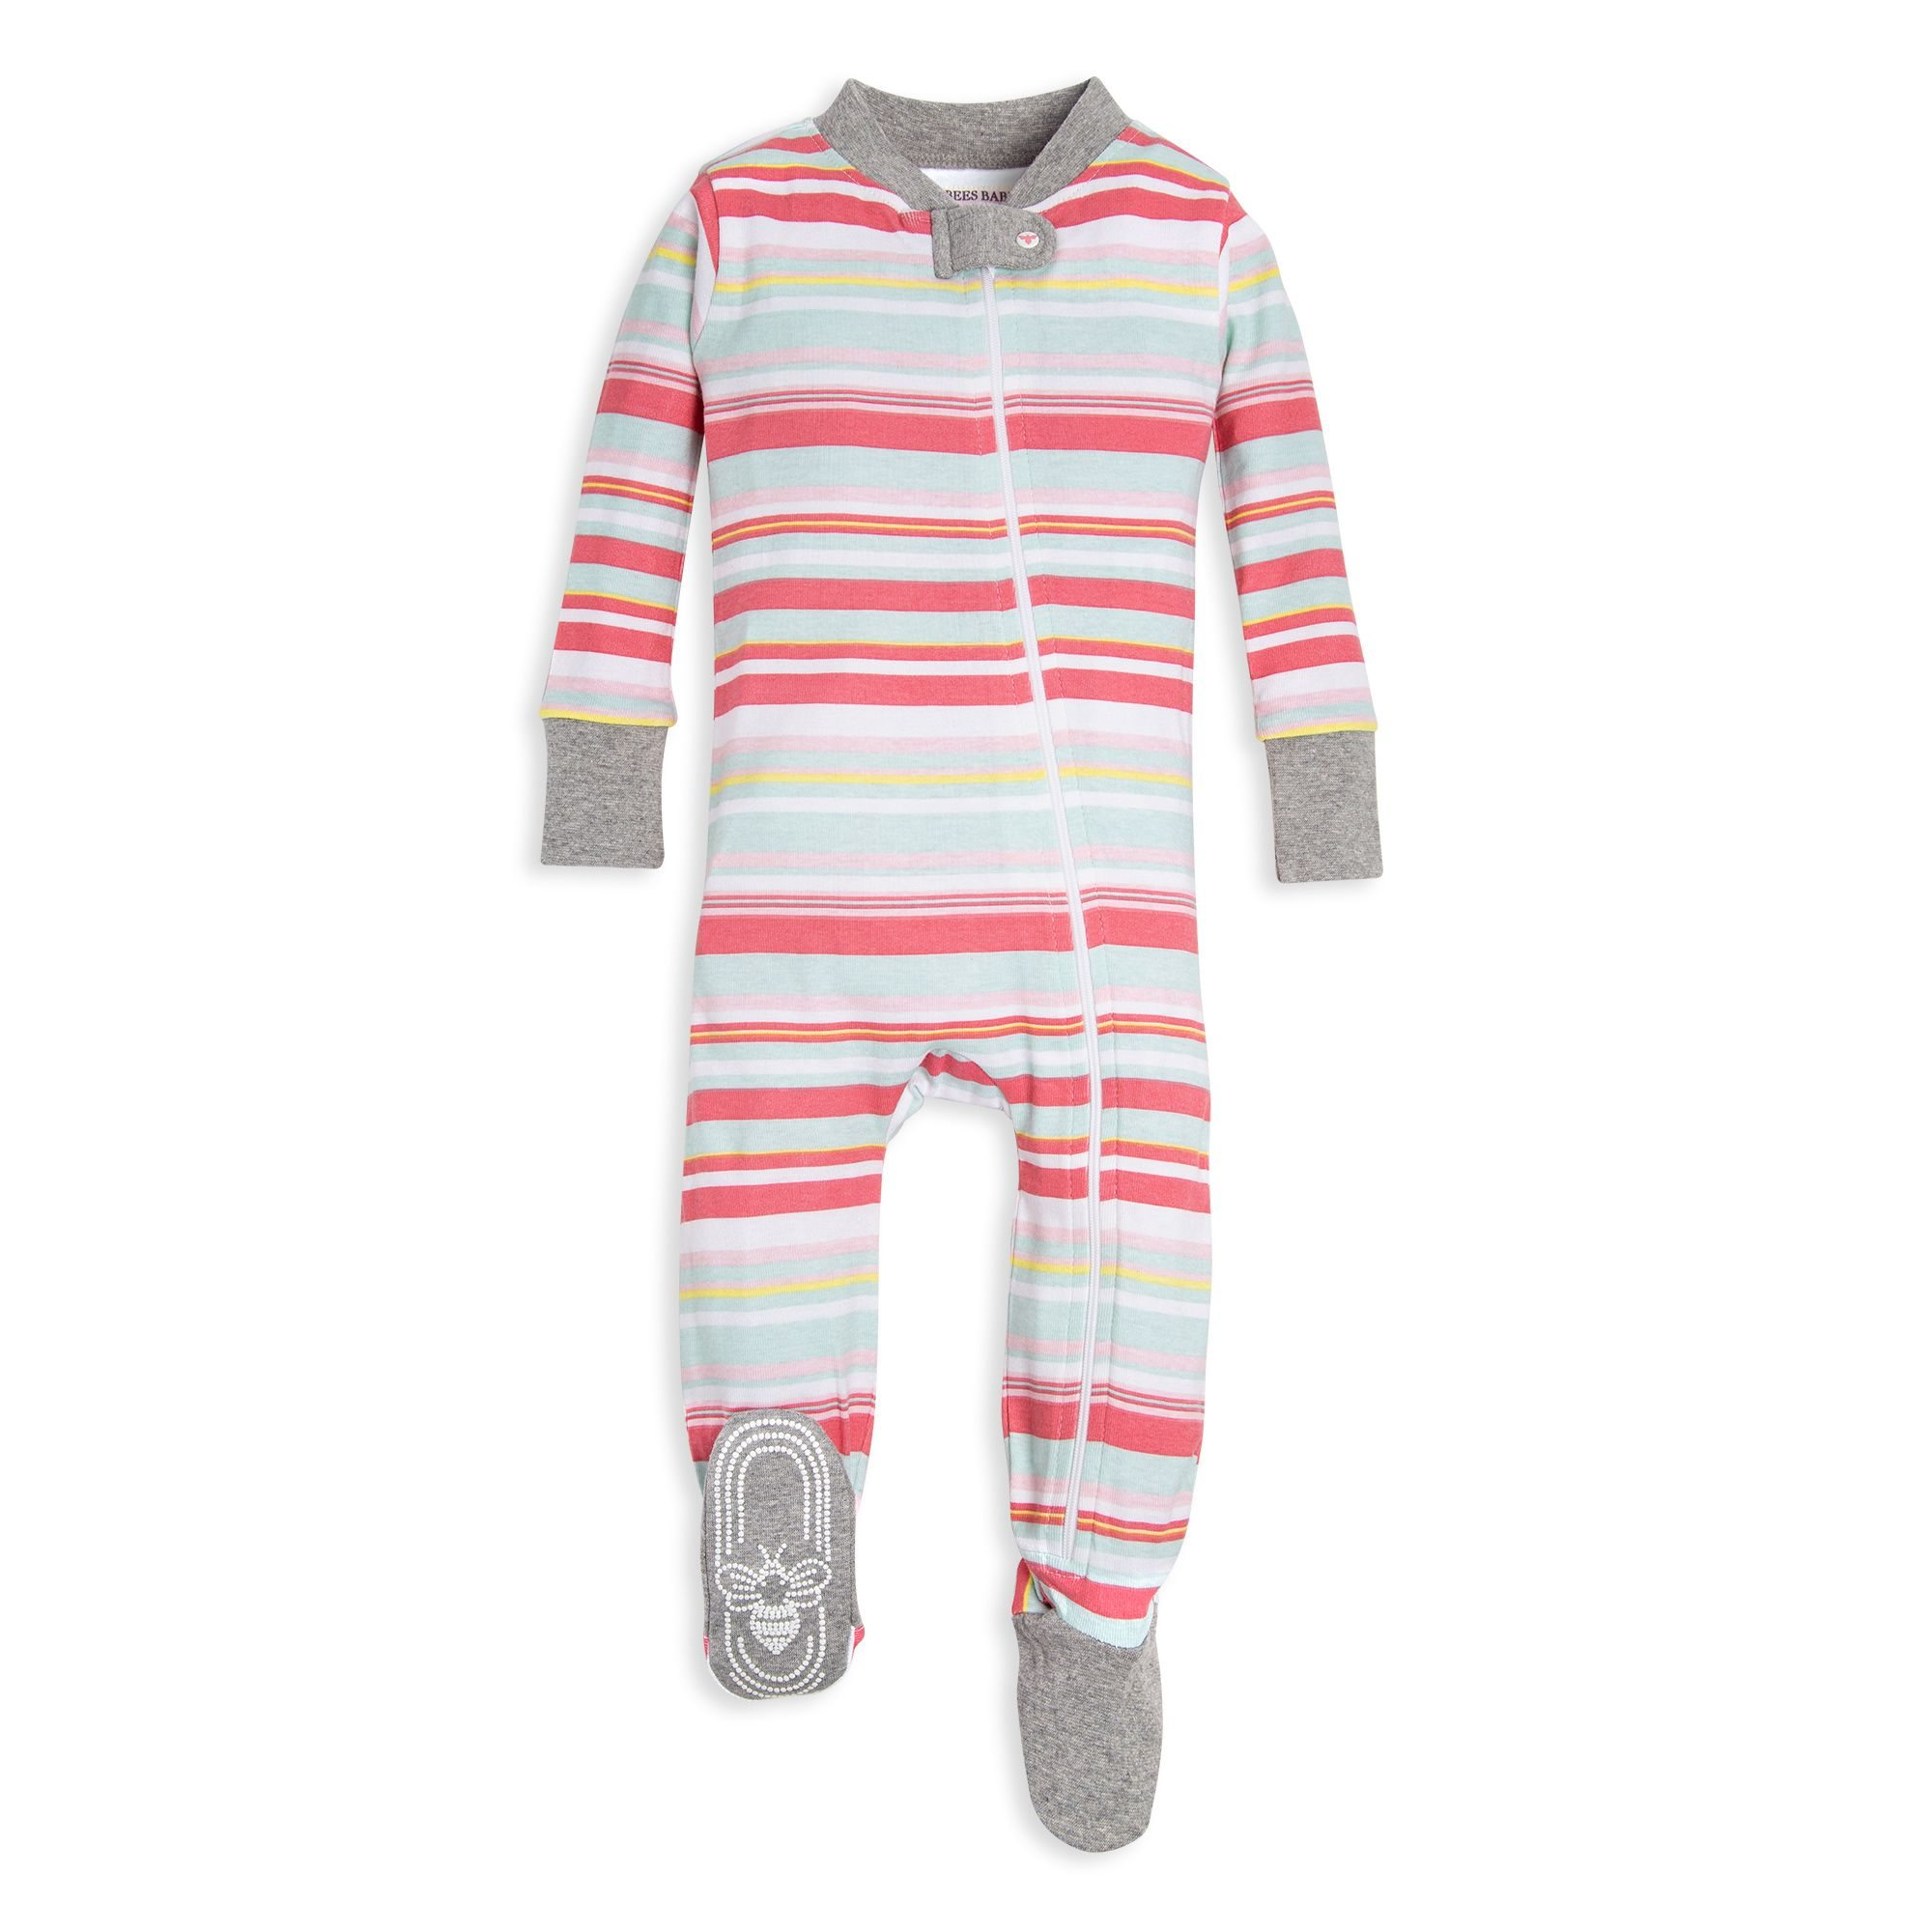 Vintage Multi-Stripe Organic Baby Zip Up Footed Pajamas